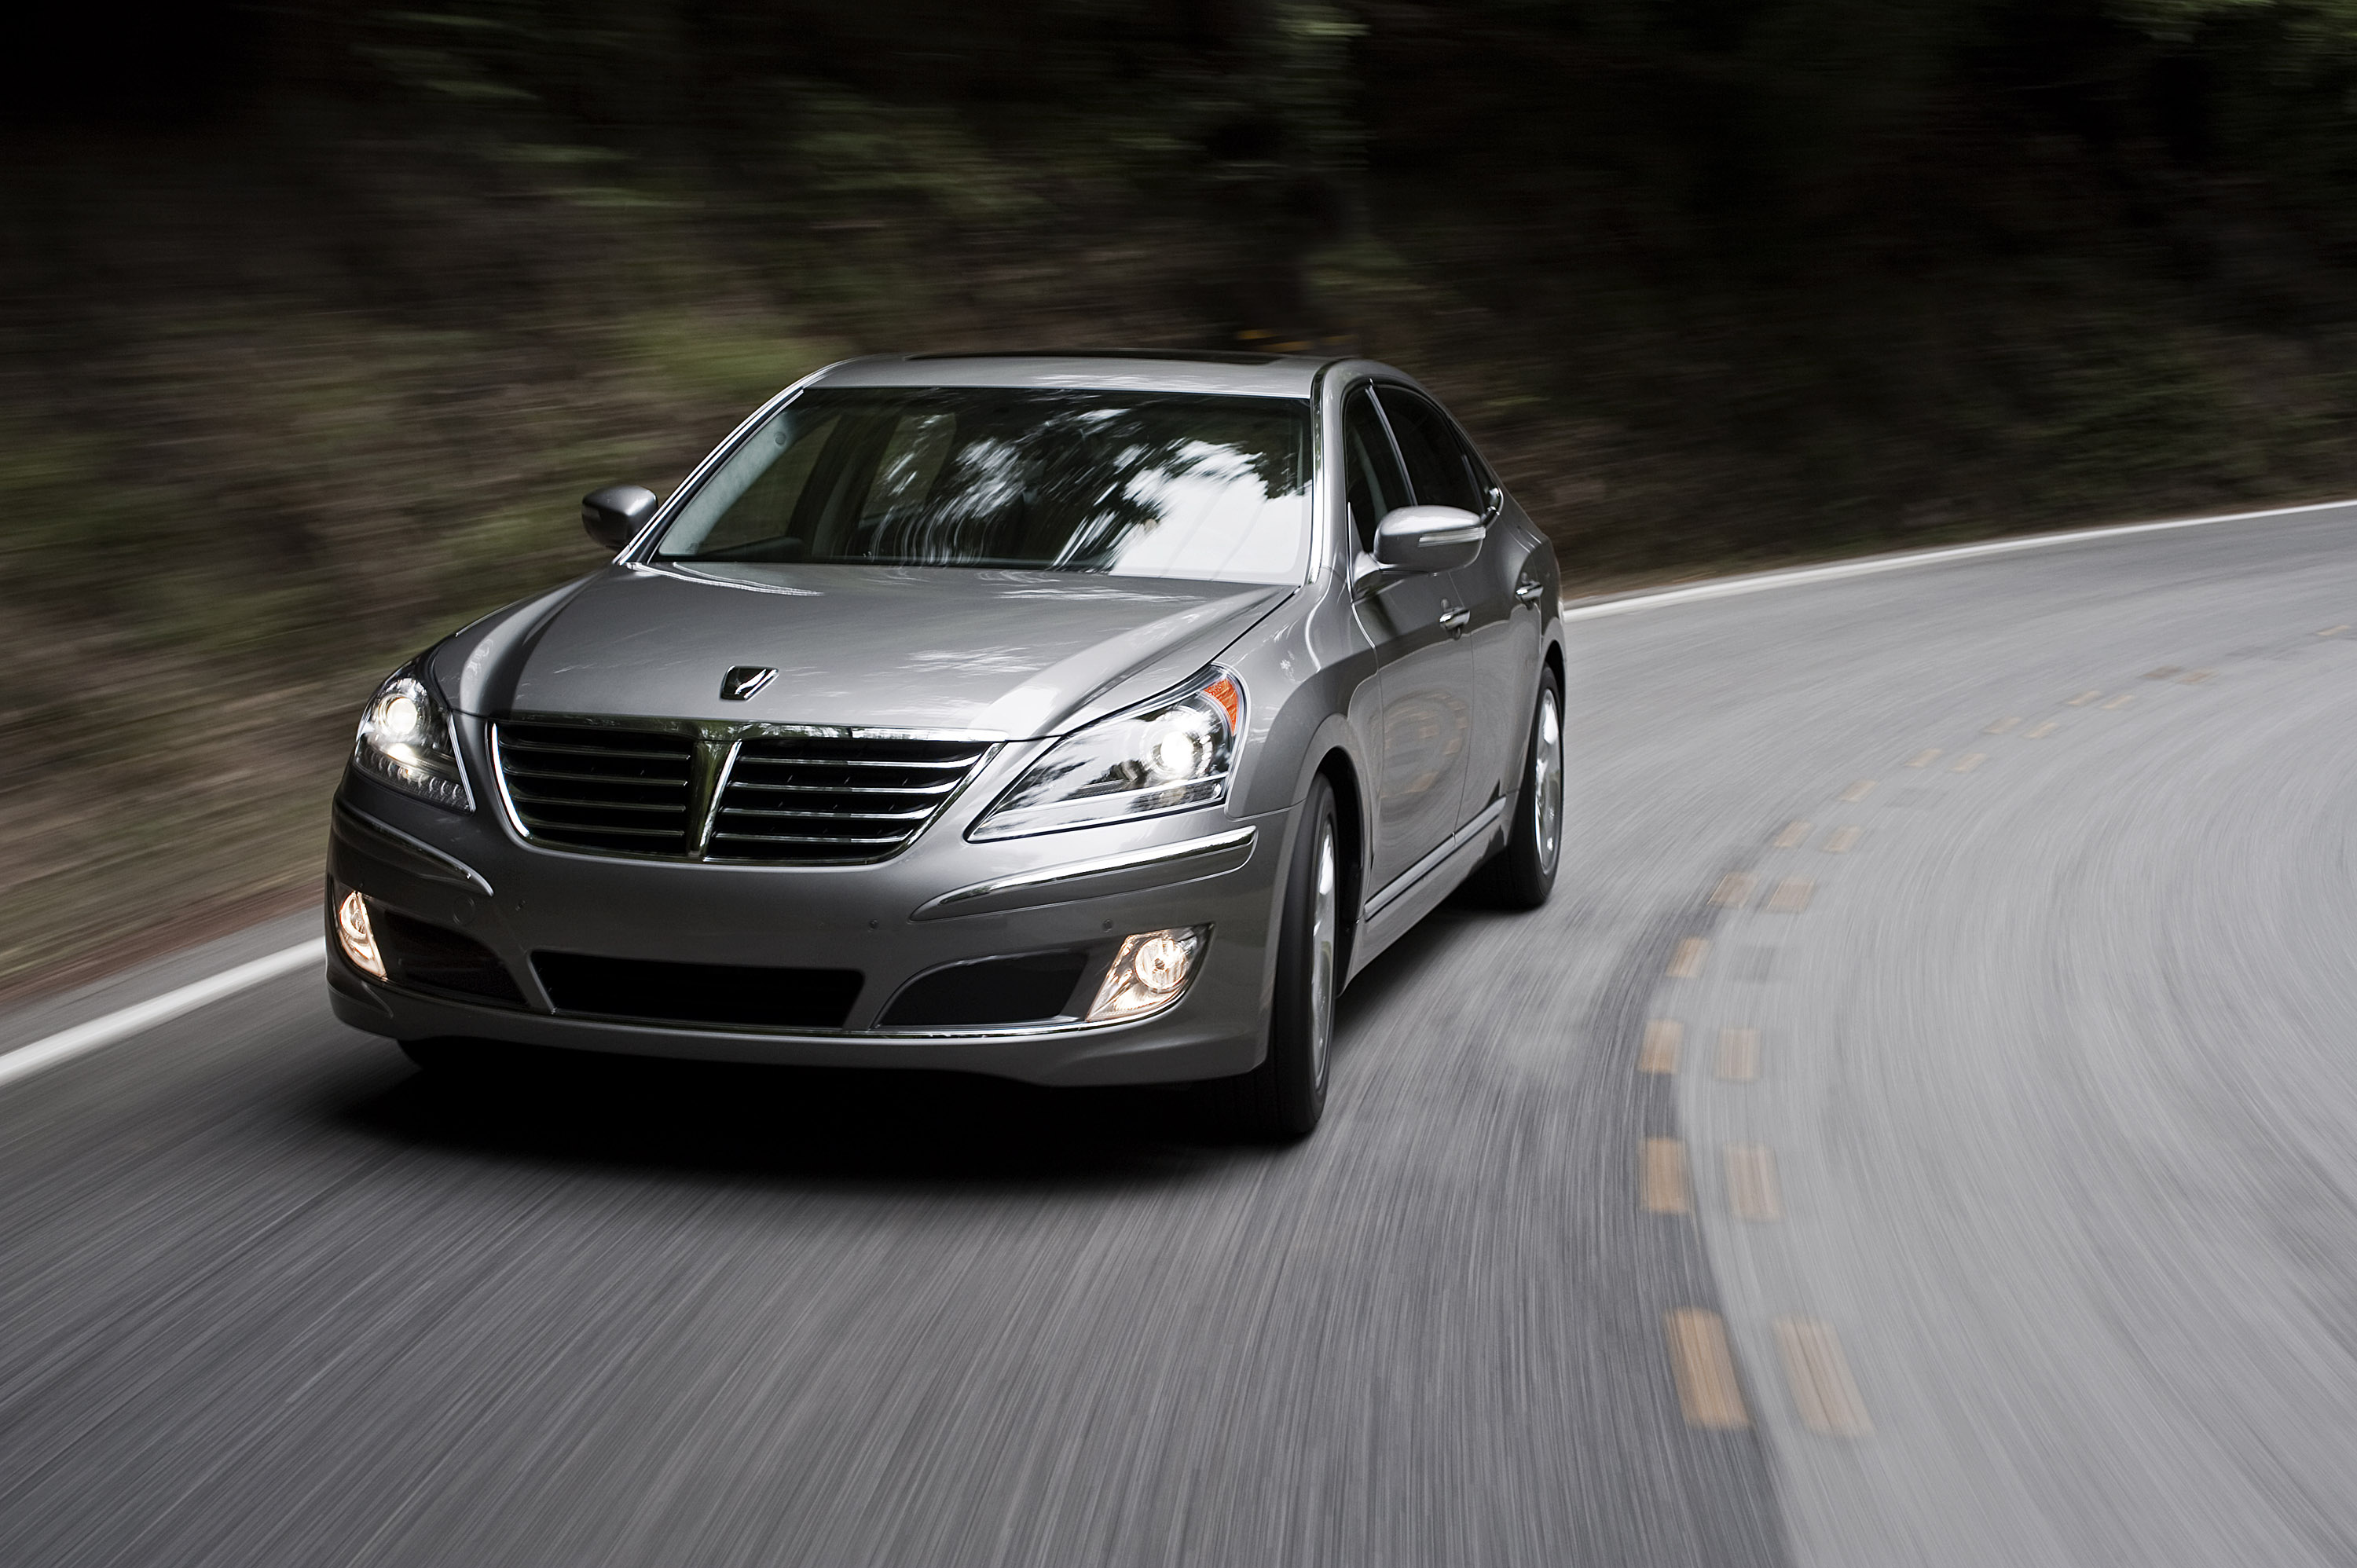 equus release hyundai and price of interior car images date